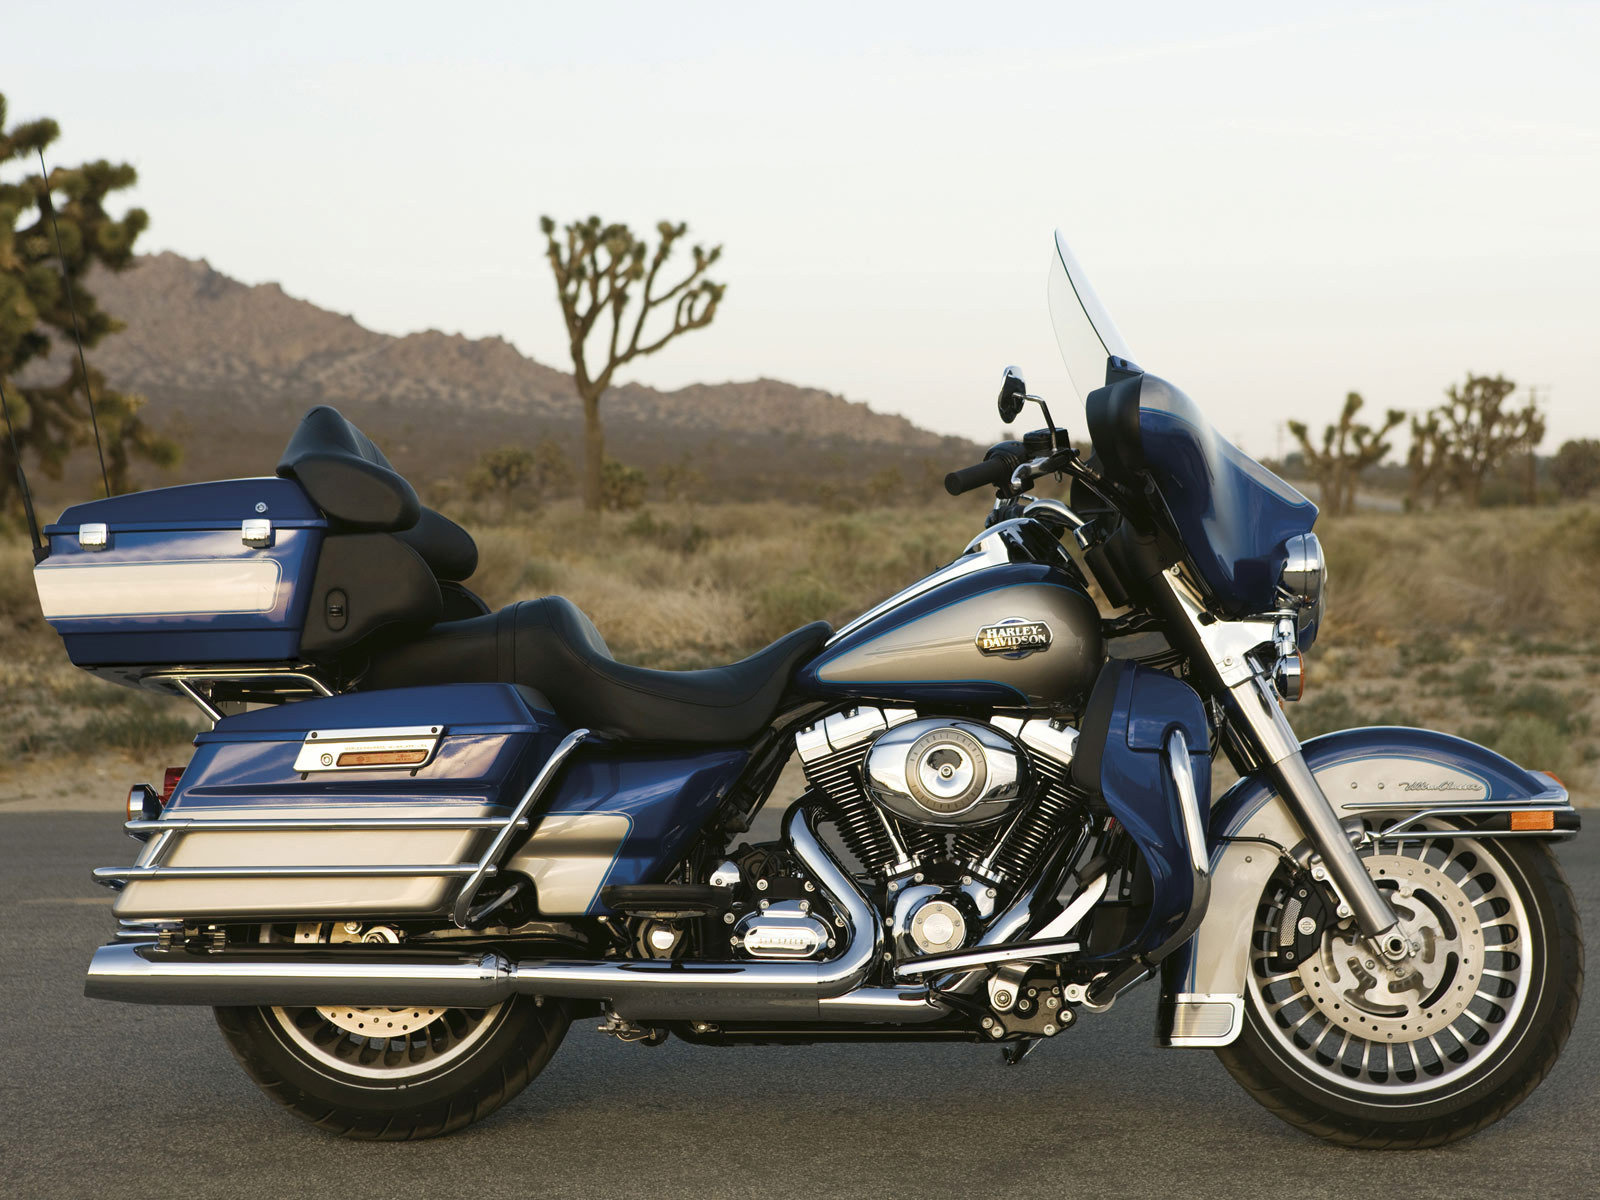 2012 harley davidson flhtcu ultra classic electra glide picture 433358 motorcycle review. Black Bedroom Furniture Sets. Home Design Ideas